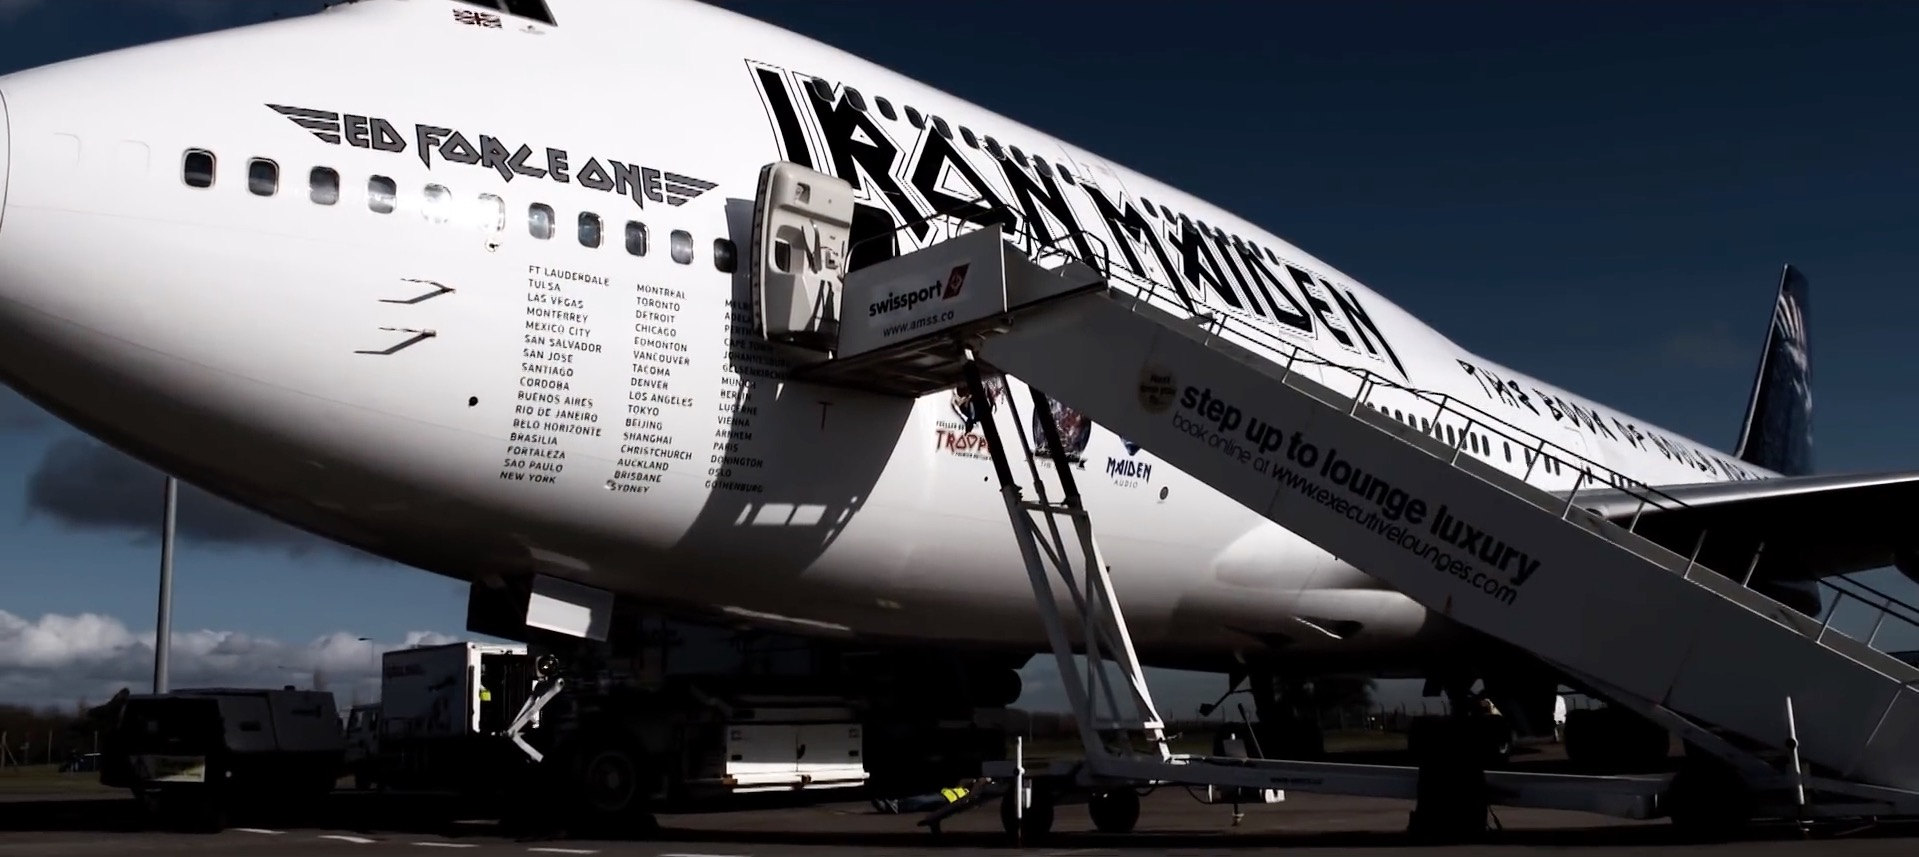 Iron Maiden Ed Force One (c) Iron Maiden